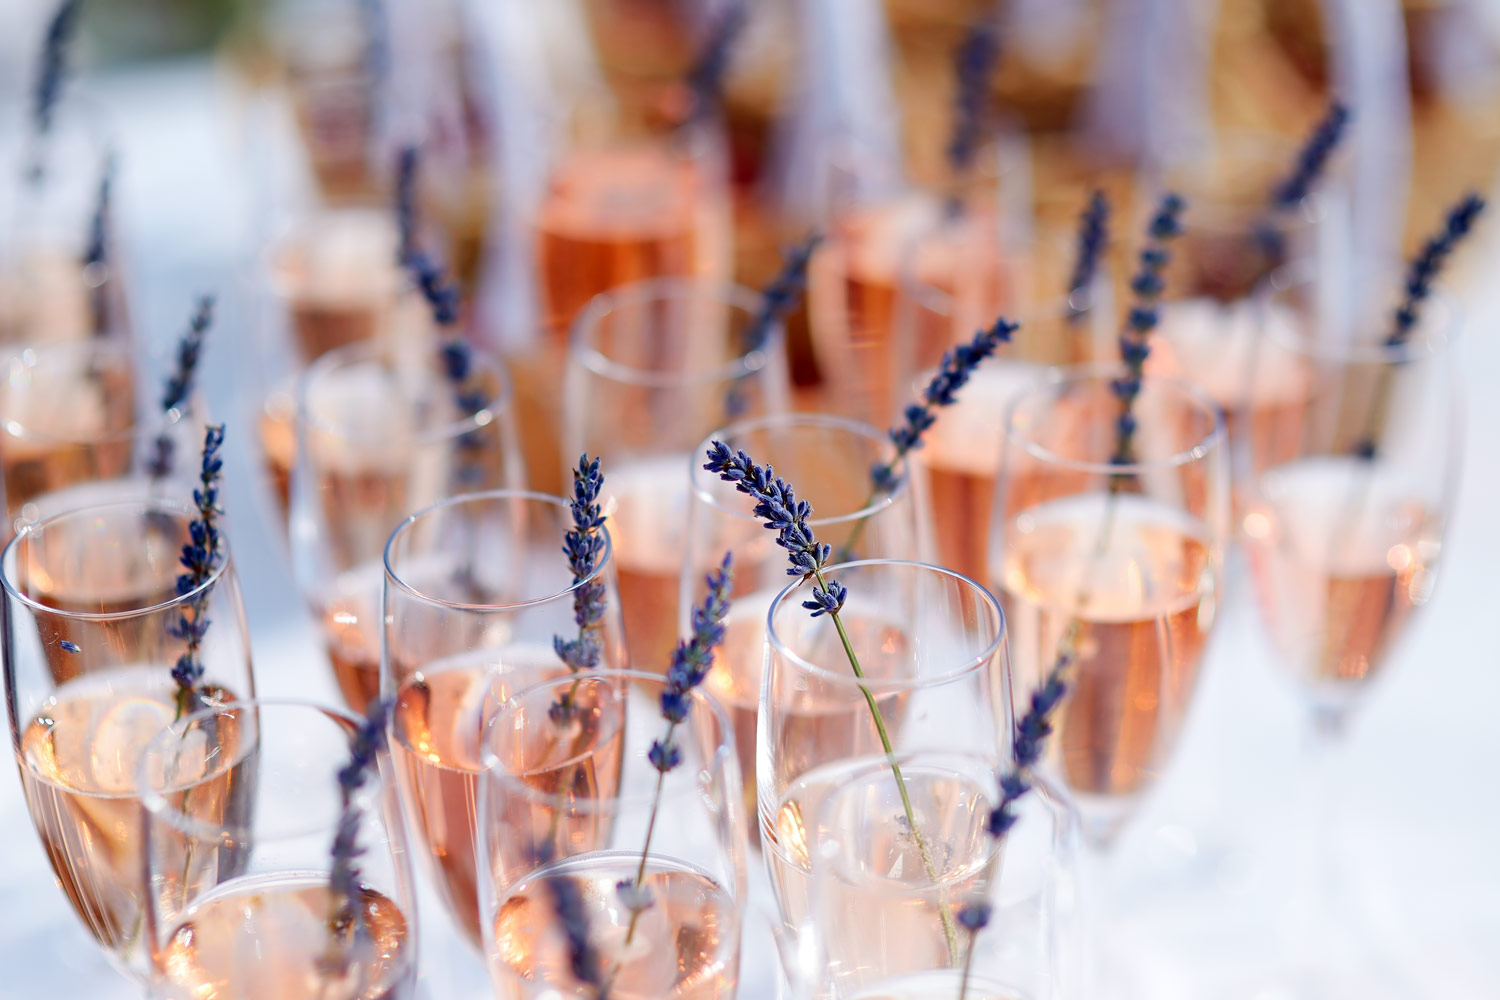 How To Make A Ginsecco photo